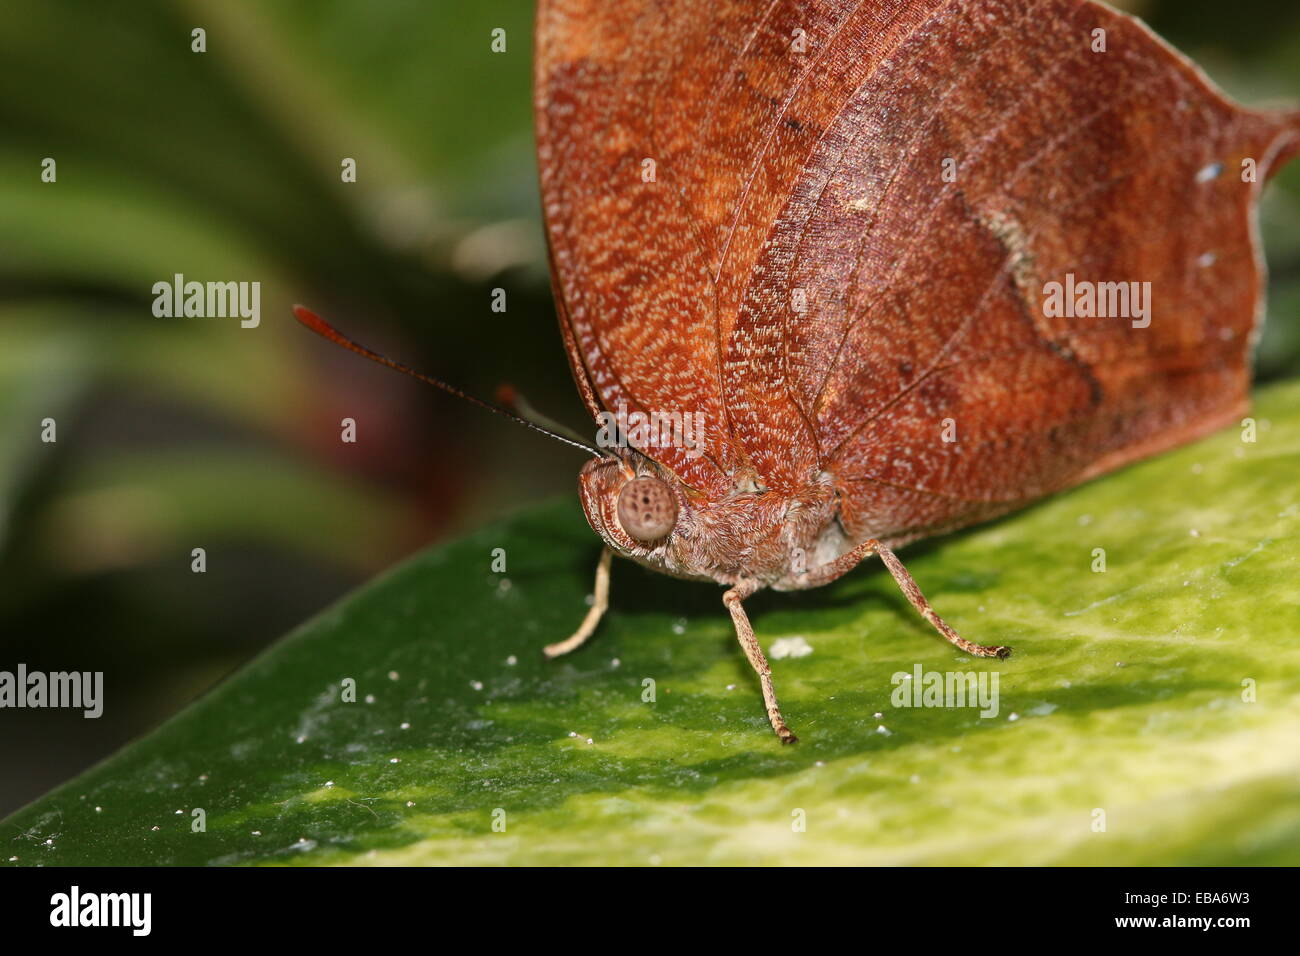 Bộ sưu tập cánh vẩy 4 - Page 26 South-american-noble-leafwing-butterfly-fountainea-nobilis-EBA6W3